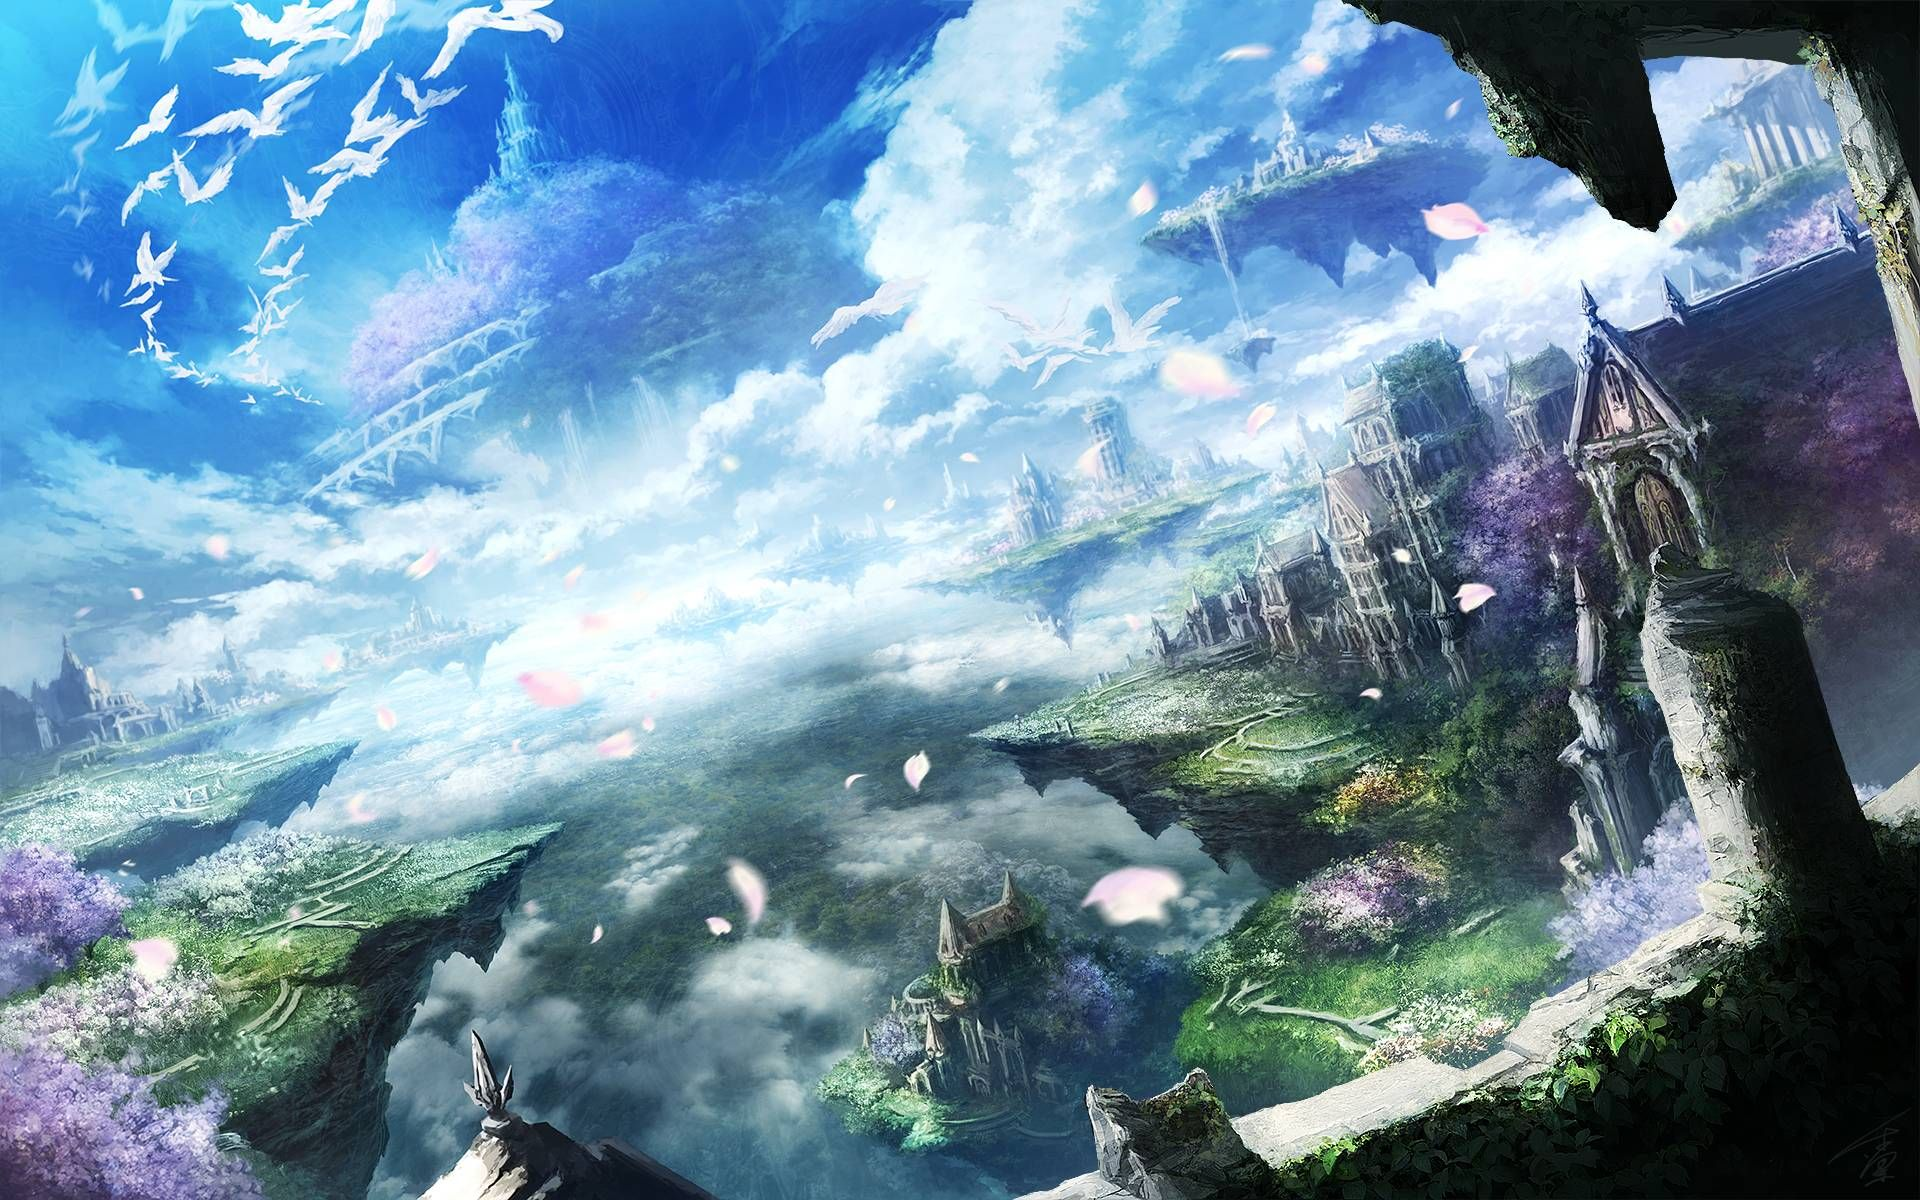 Anthesis by ohitashi landscape wallpaper anime scenery